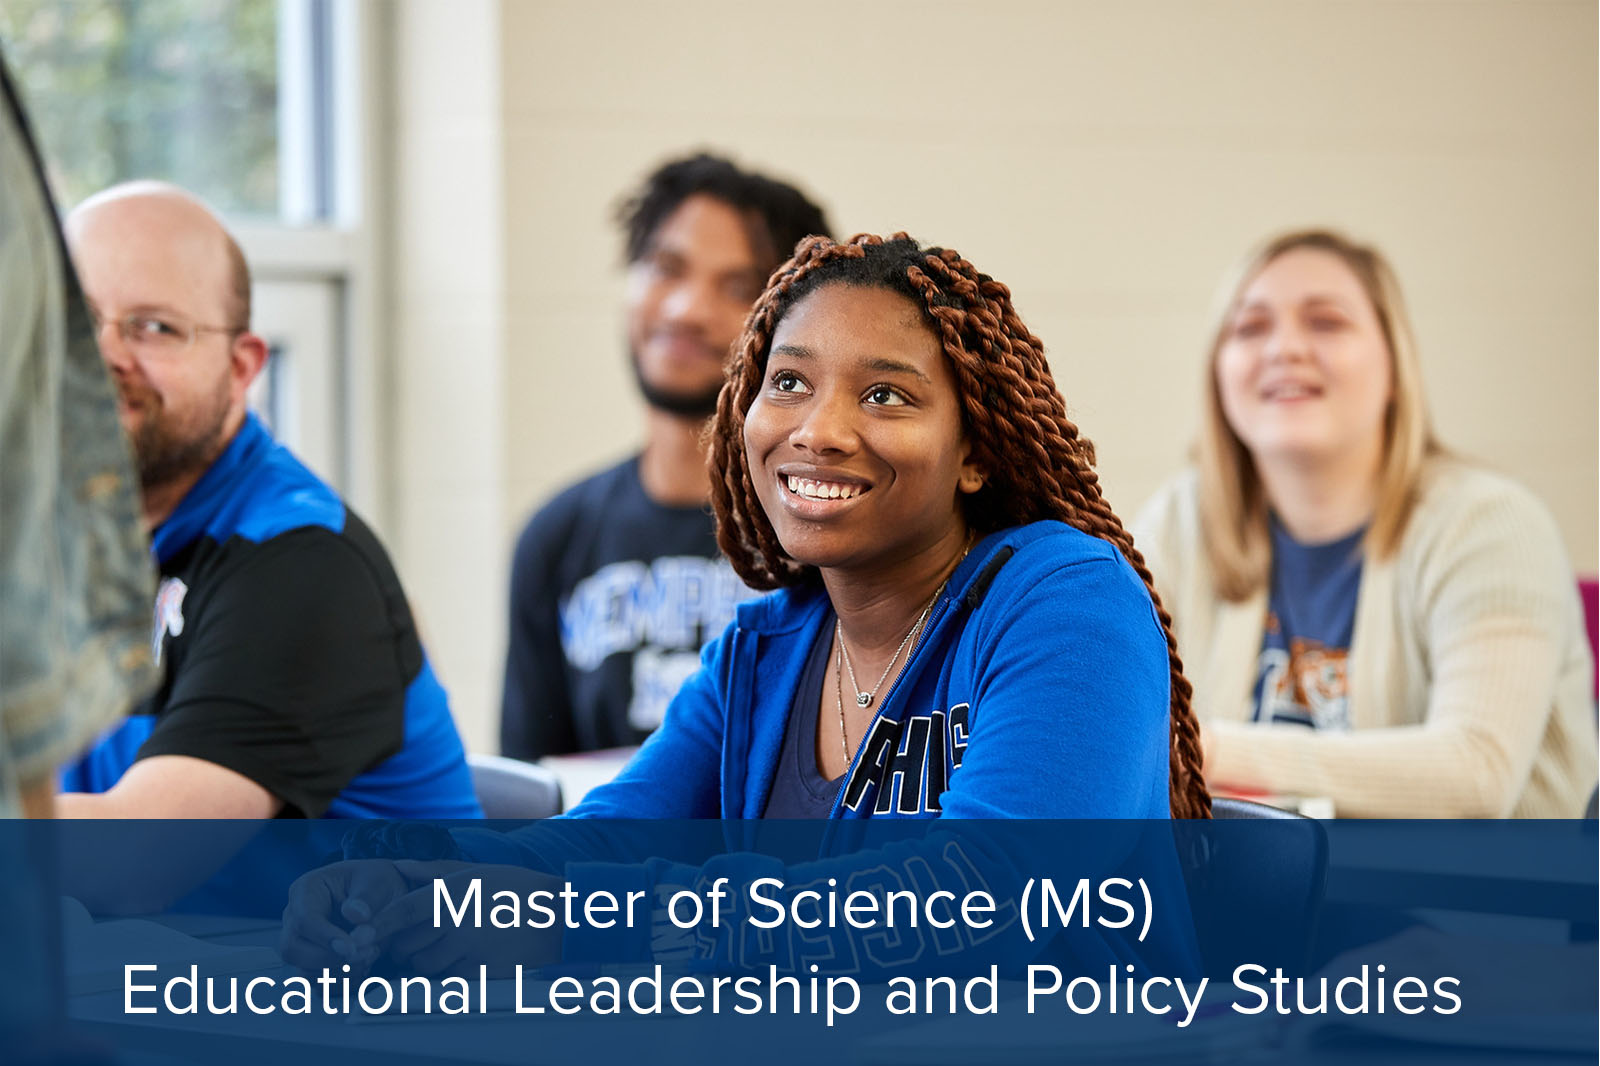 Master of Science in Educational Leadership and Policy Studies